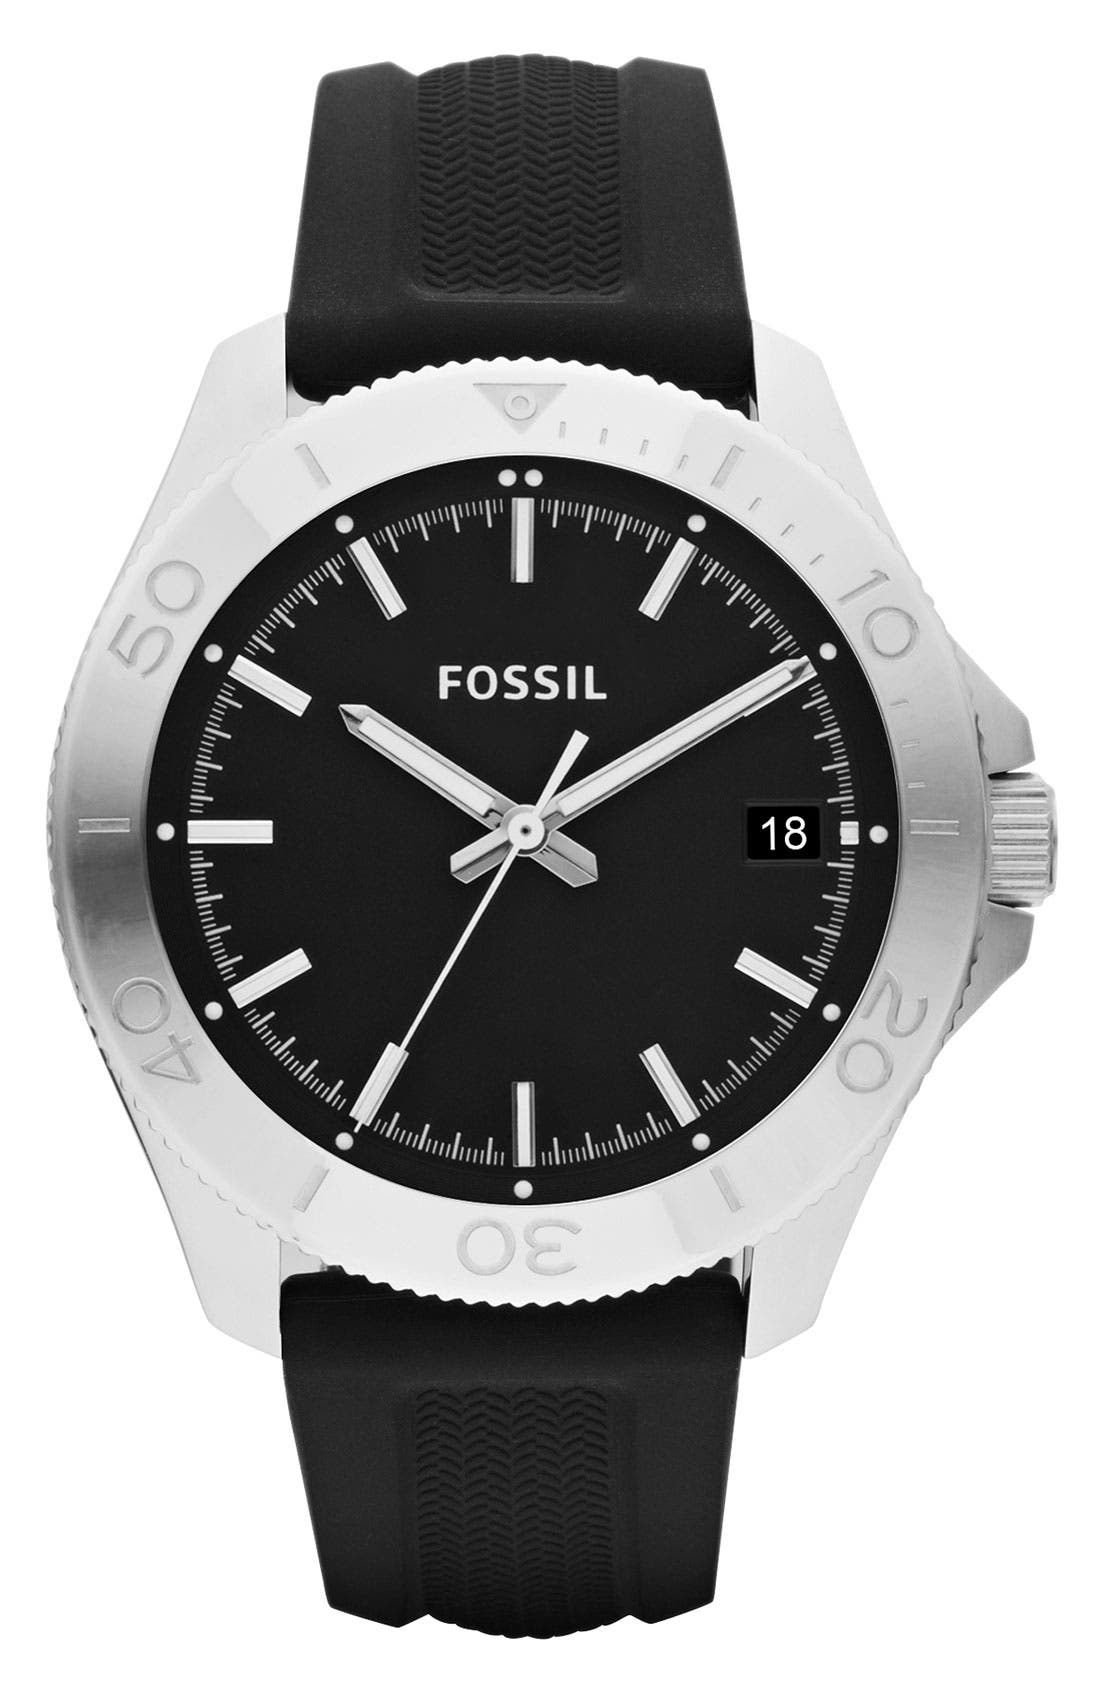 Main Image - Fossil 'Retro Traveler' Silicone Strap Watch, 44mm